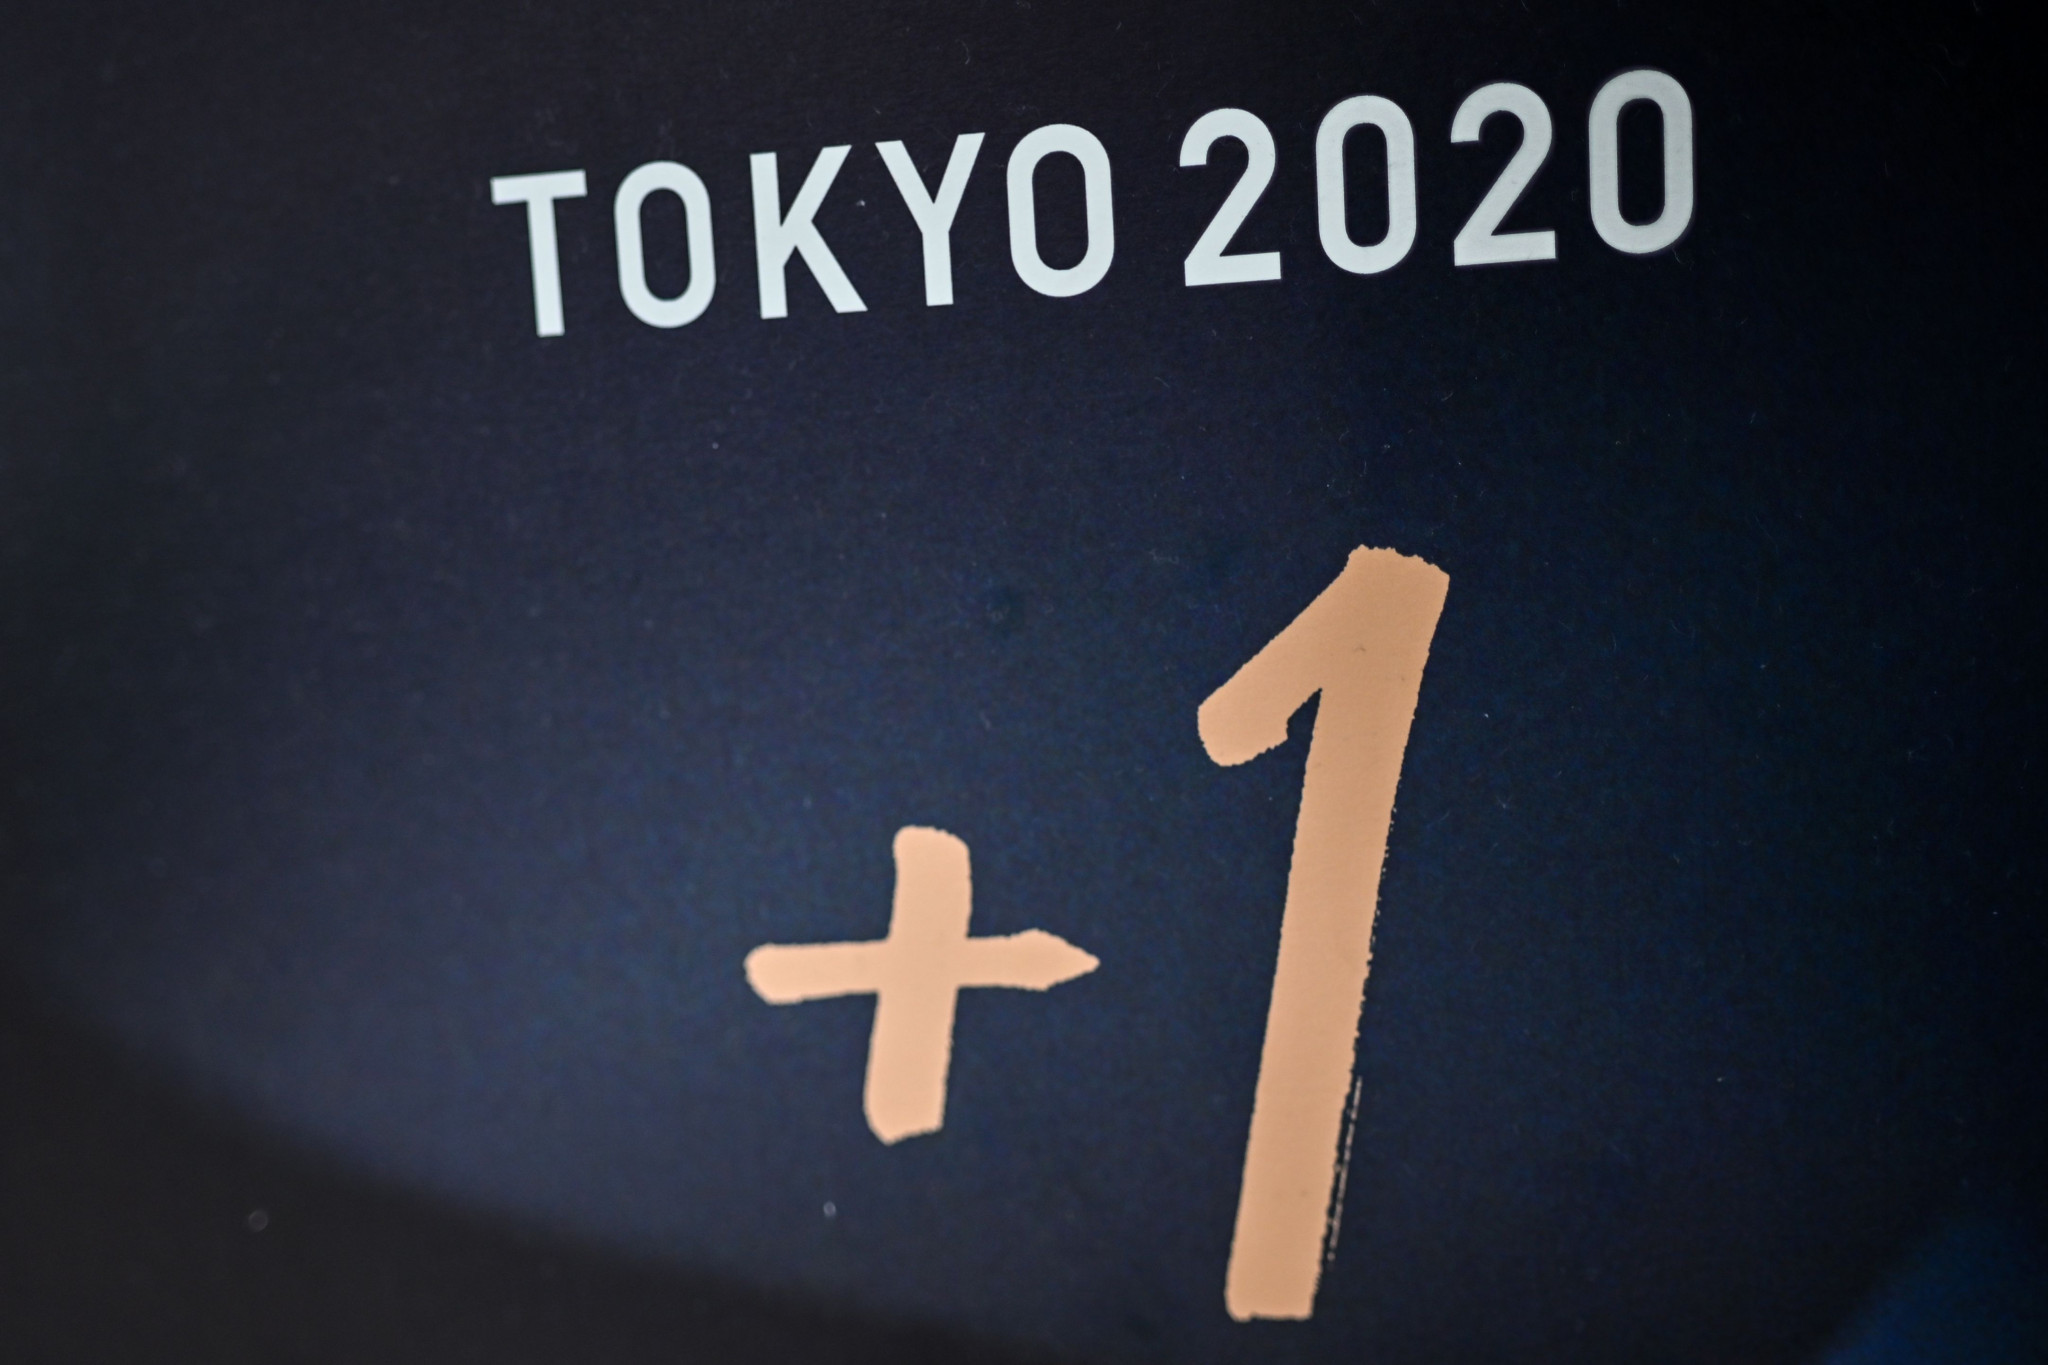 The delay to Tokyo 2020 means sponsorship contracts are due to expire before the Games take place ©Getty Images